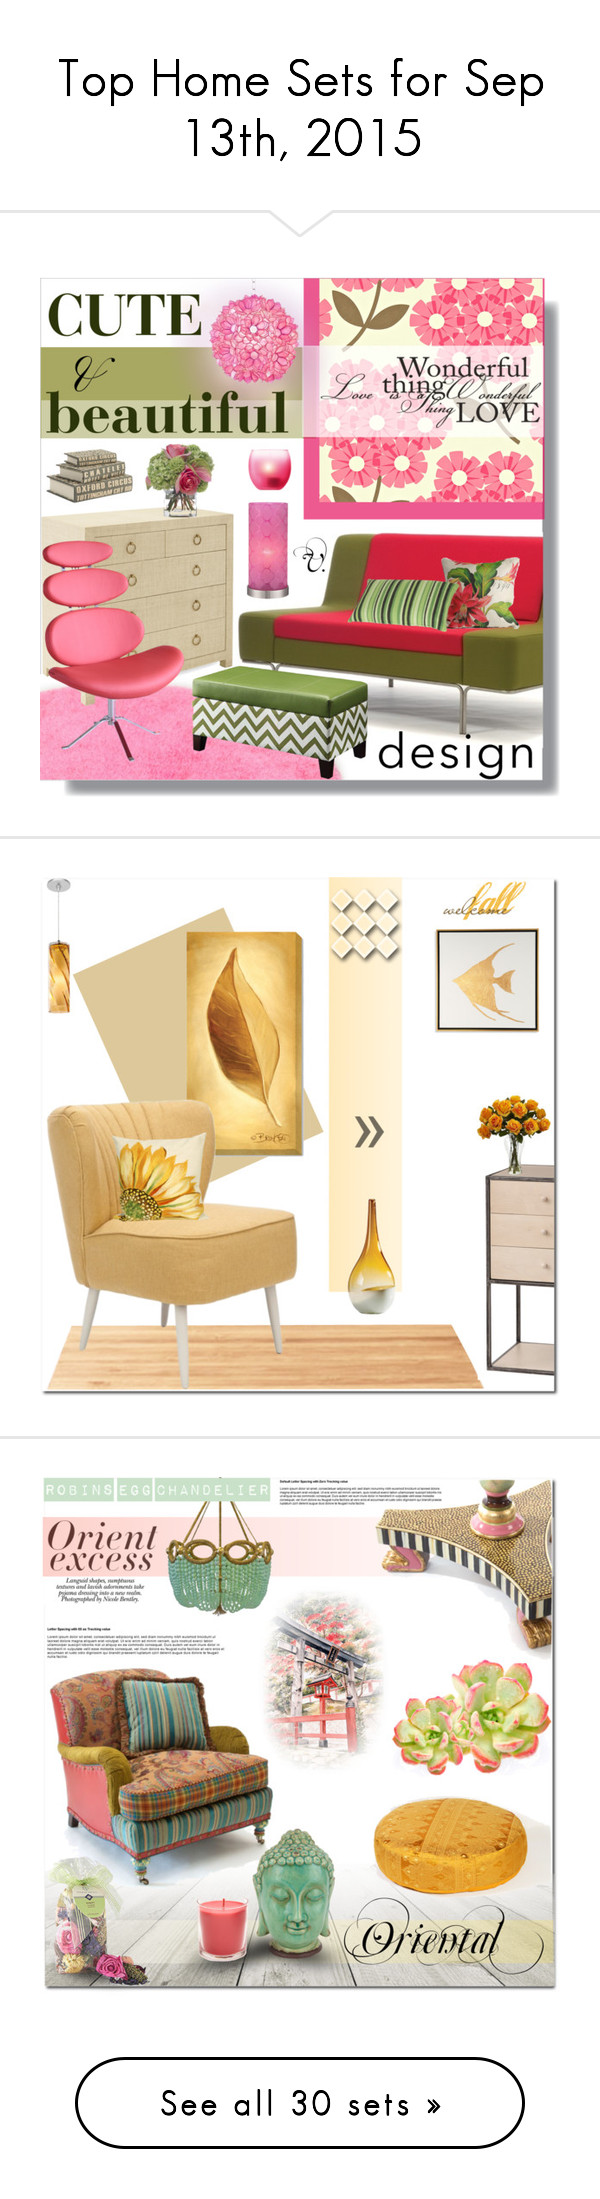 """""""Top Home Sets for Sep 13th, 2015"""" by polyvore ❤ liked on Polyvore featuring interior, interiors, interior design, home, home decor, interior decorating, TOM TAILOR, Serena & Lily, Orla Kiely and Elvang"""